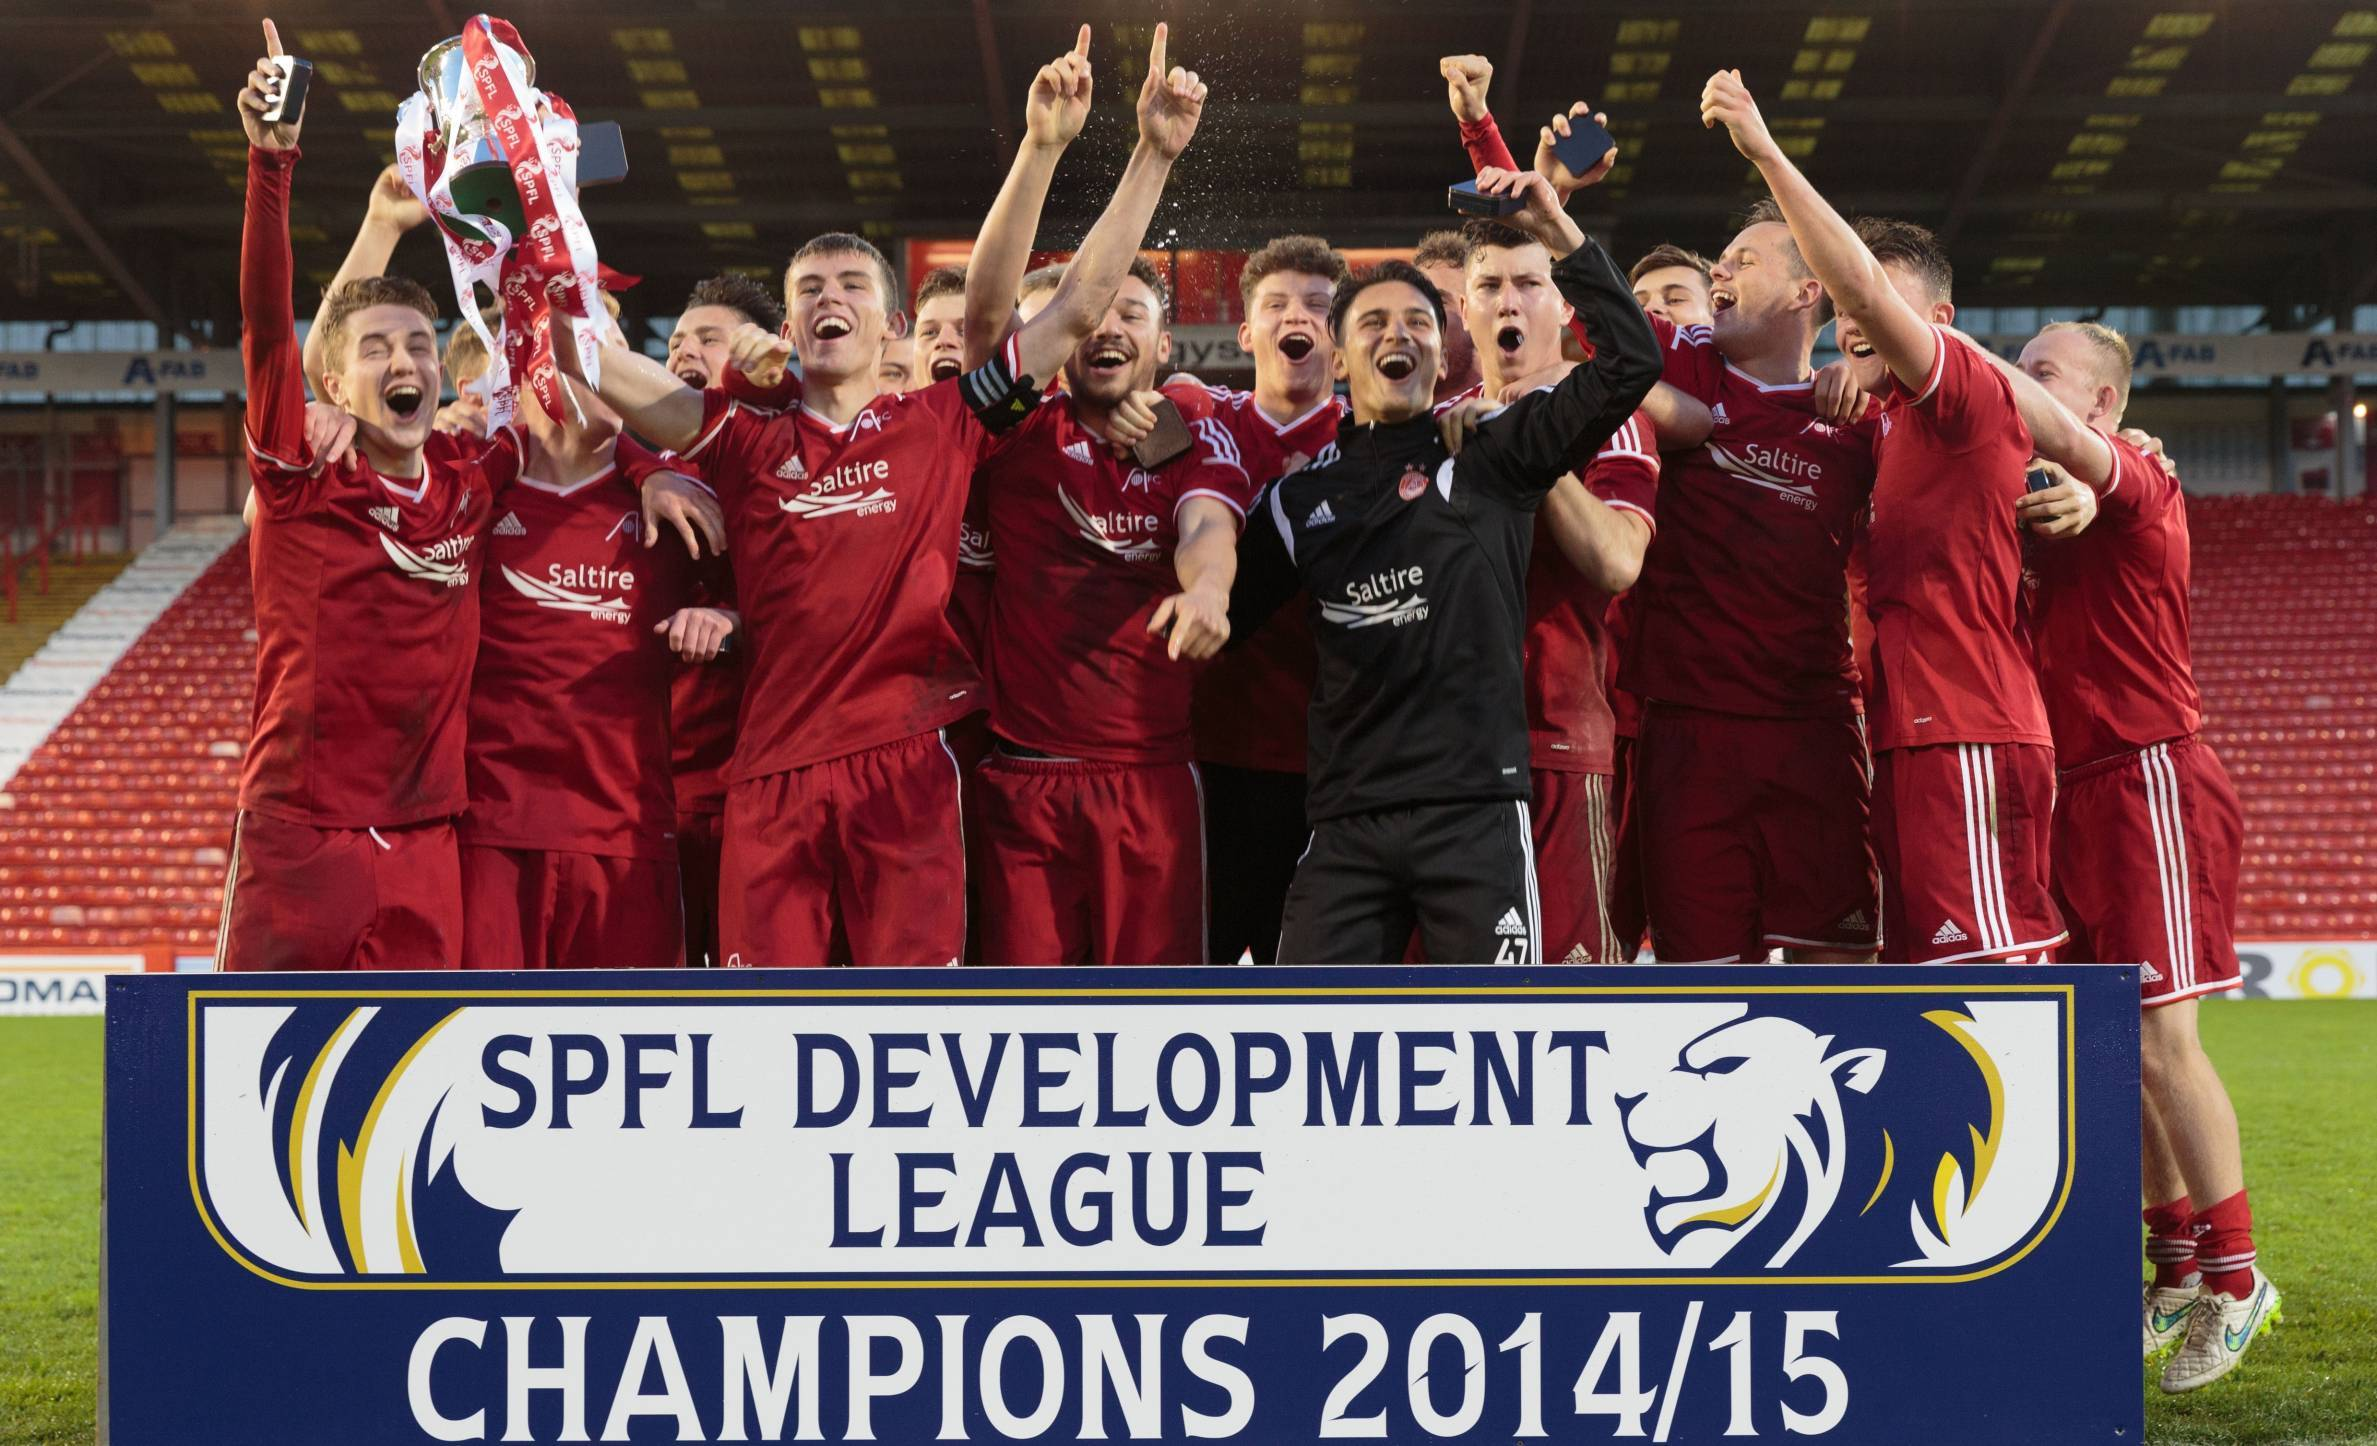 Aberdeen U20's celebrate after winning the SPFL Development League.